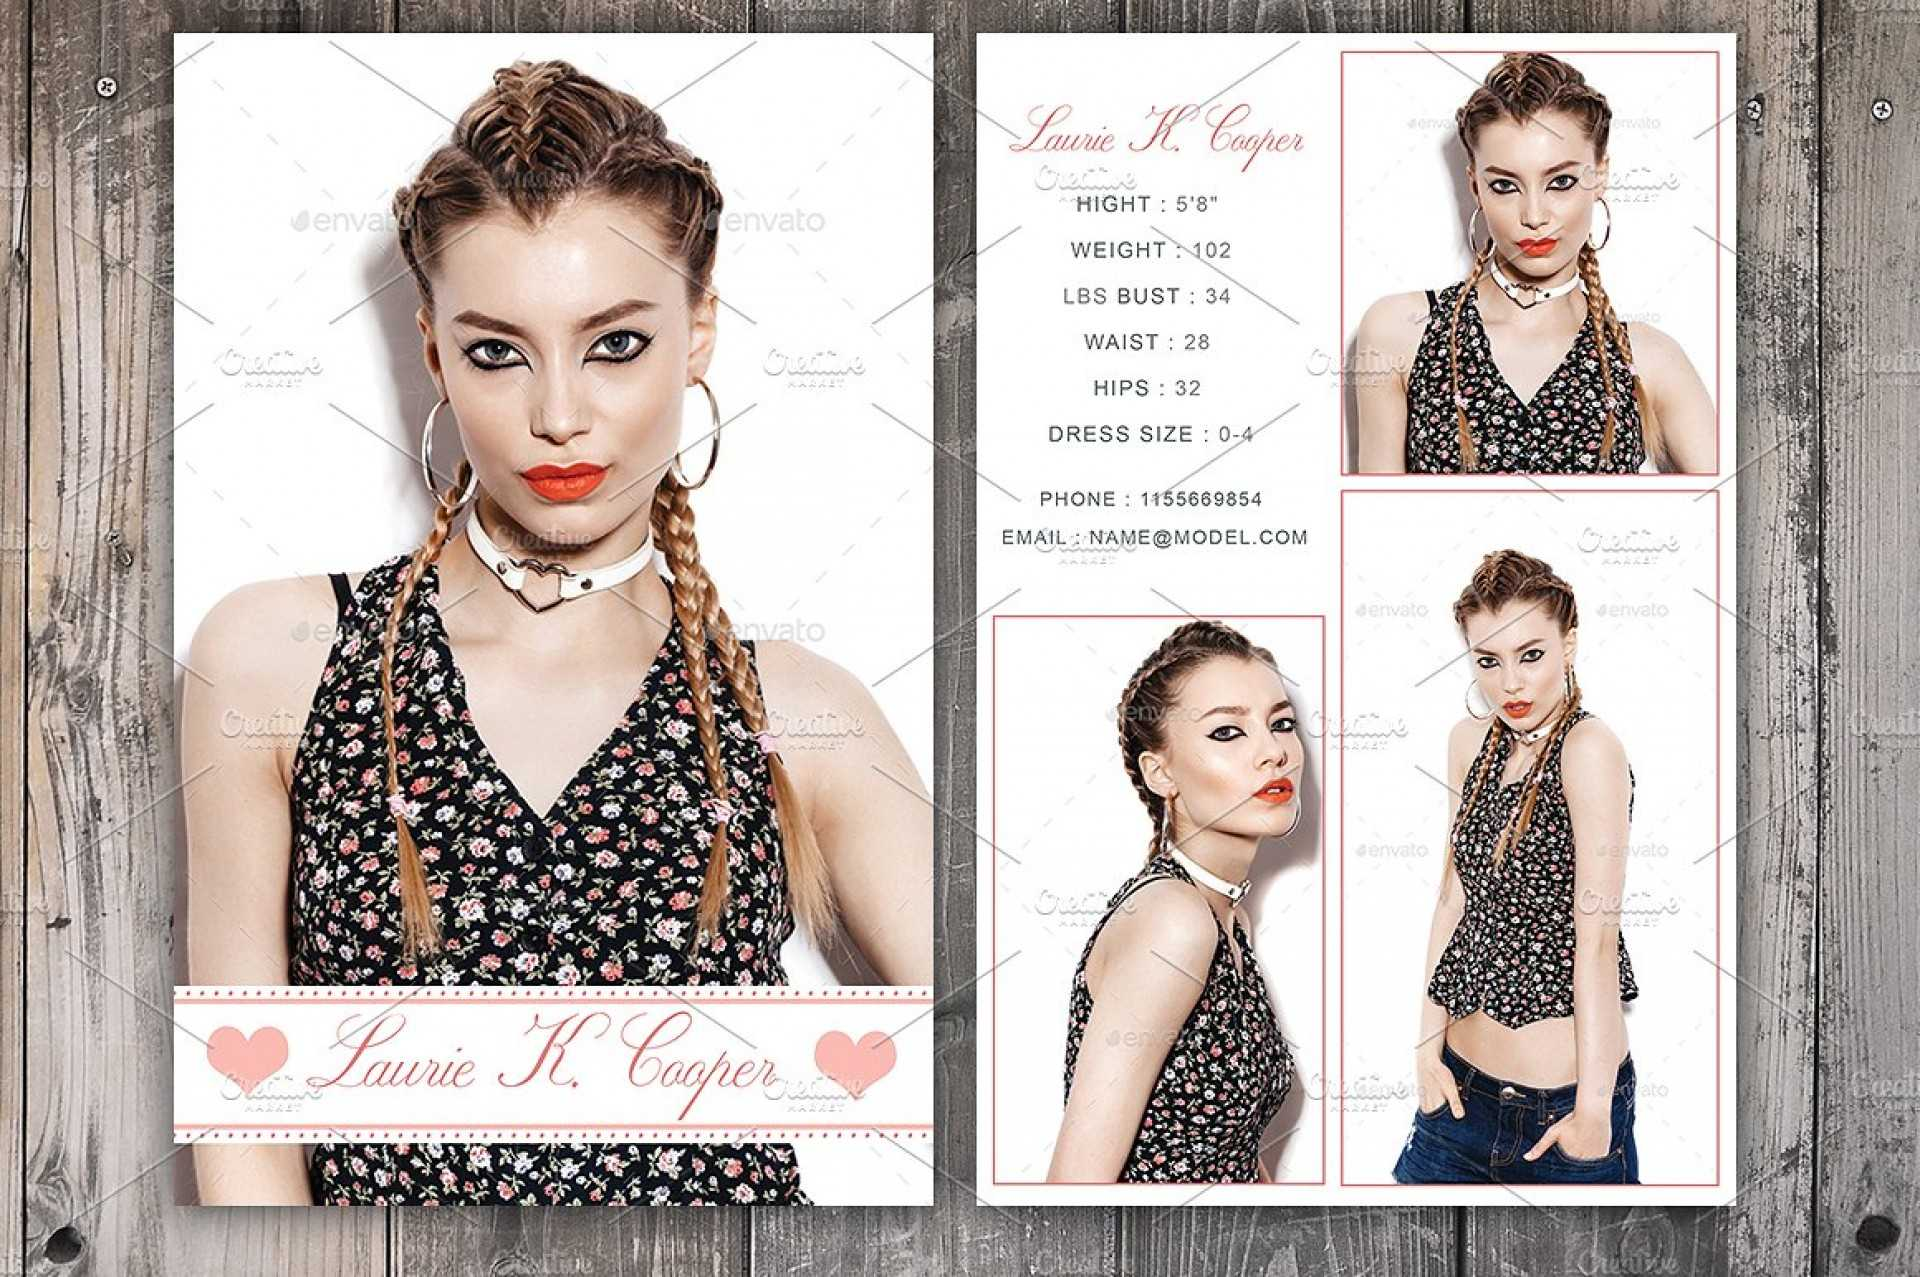 Free Model Comp Card Templates - C Punkt For Download Comp Card Template